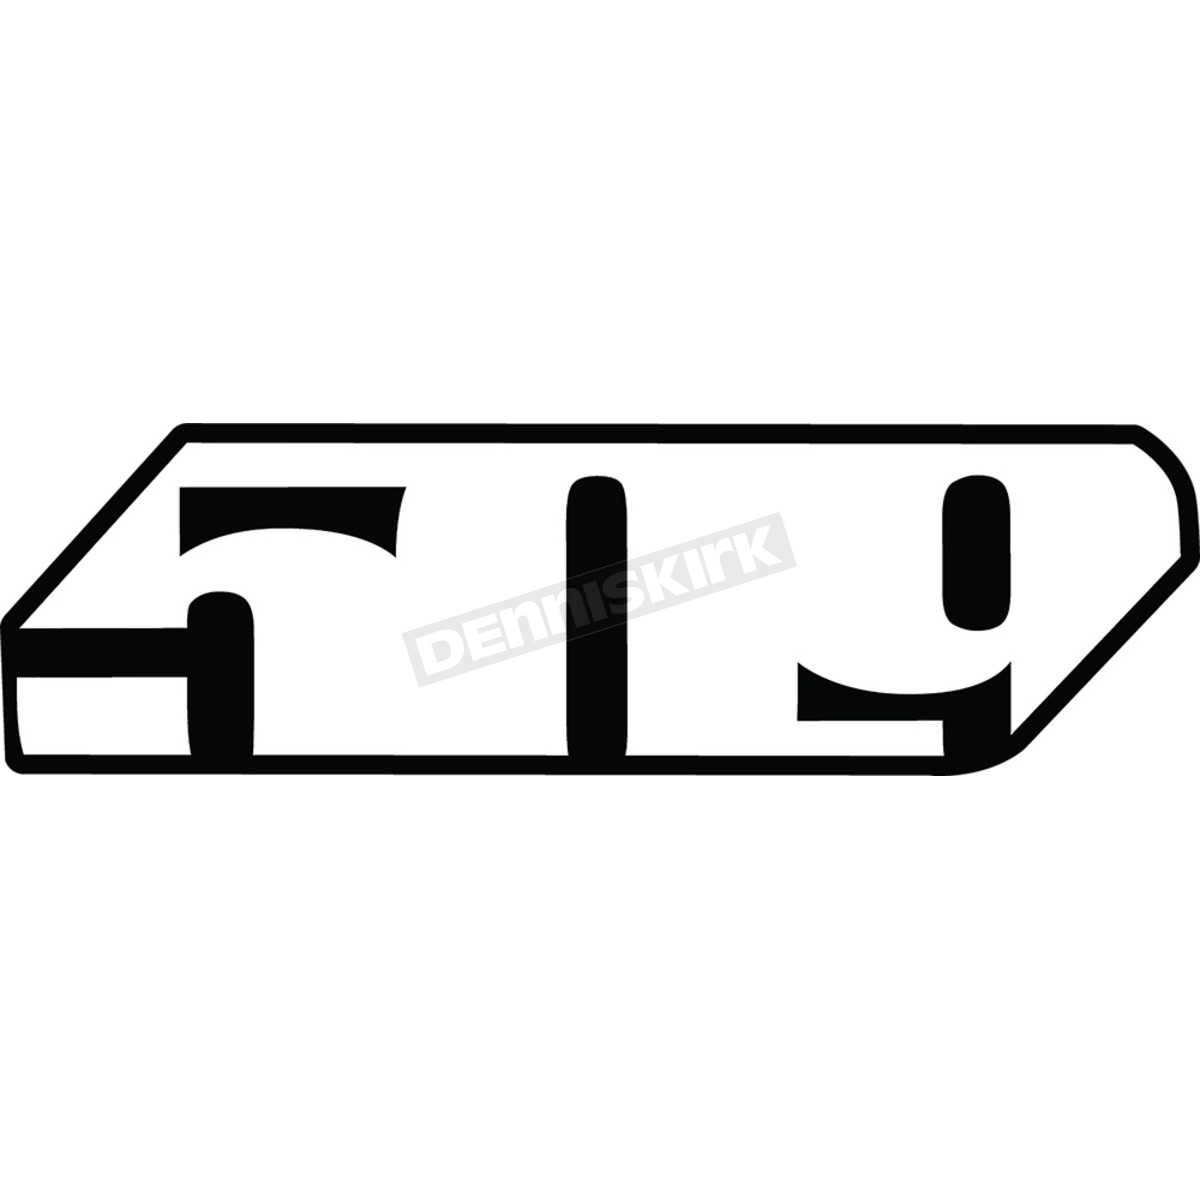 509 24 in slash logo sticker f13000100 024 002 snowmobile dennis kirk 24 in slash logo sticker f13000100 024 002